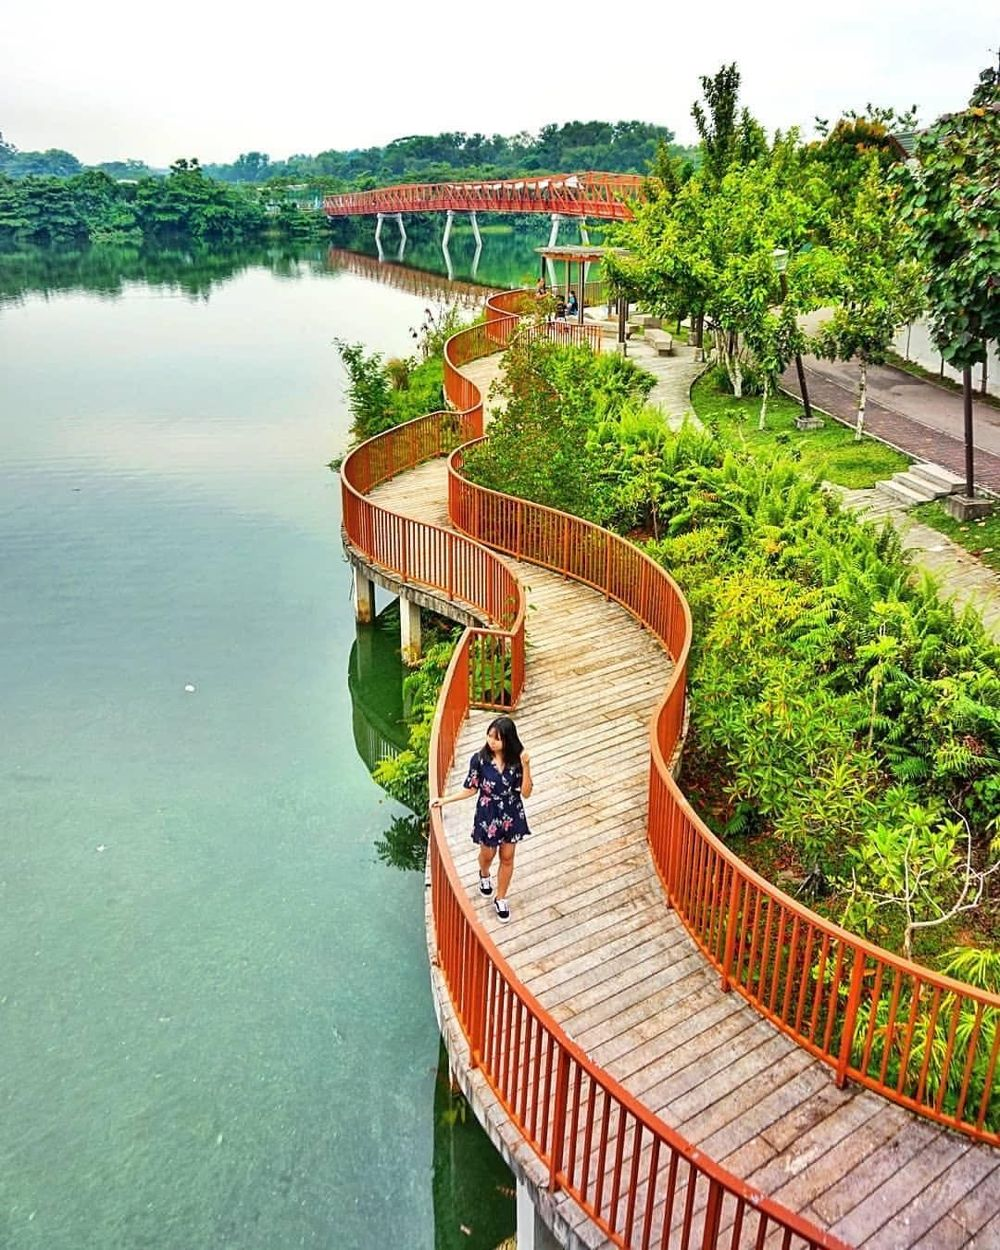 nature reserves and parks - punggol waterway park